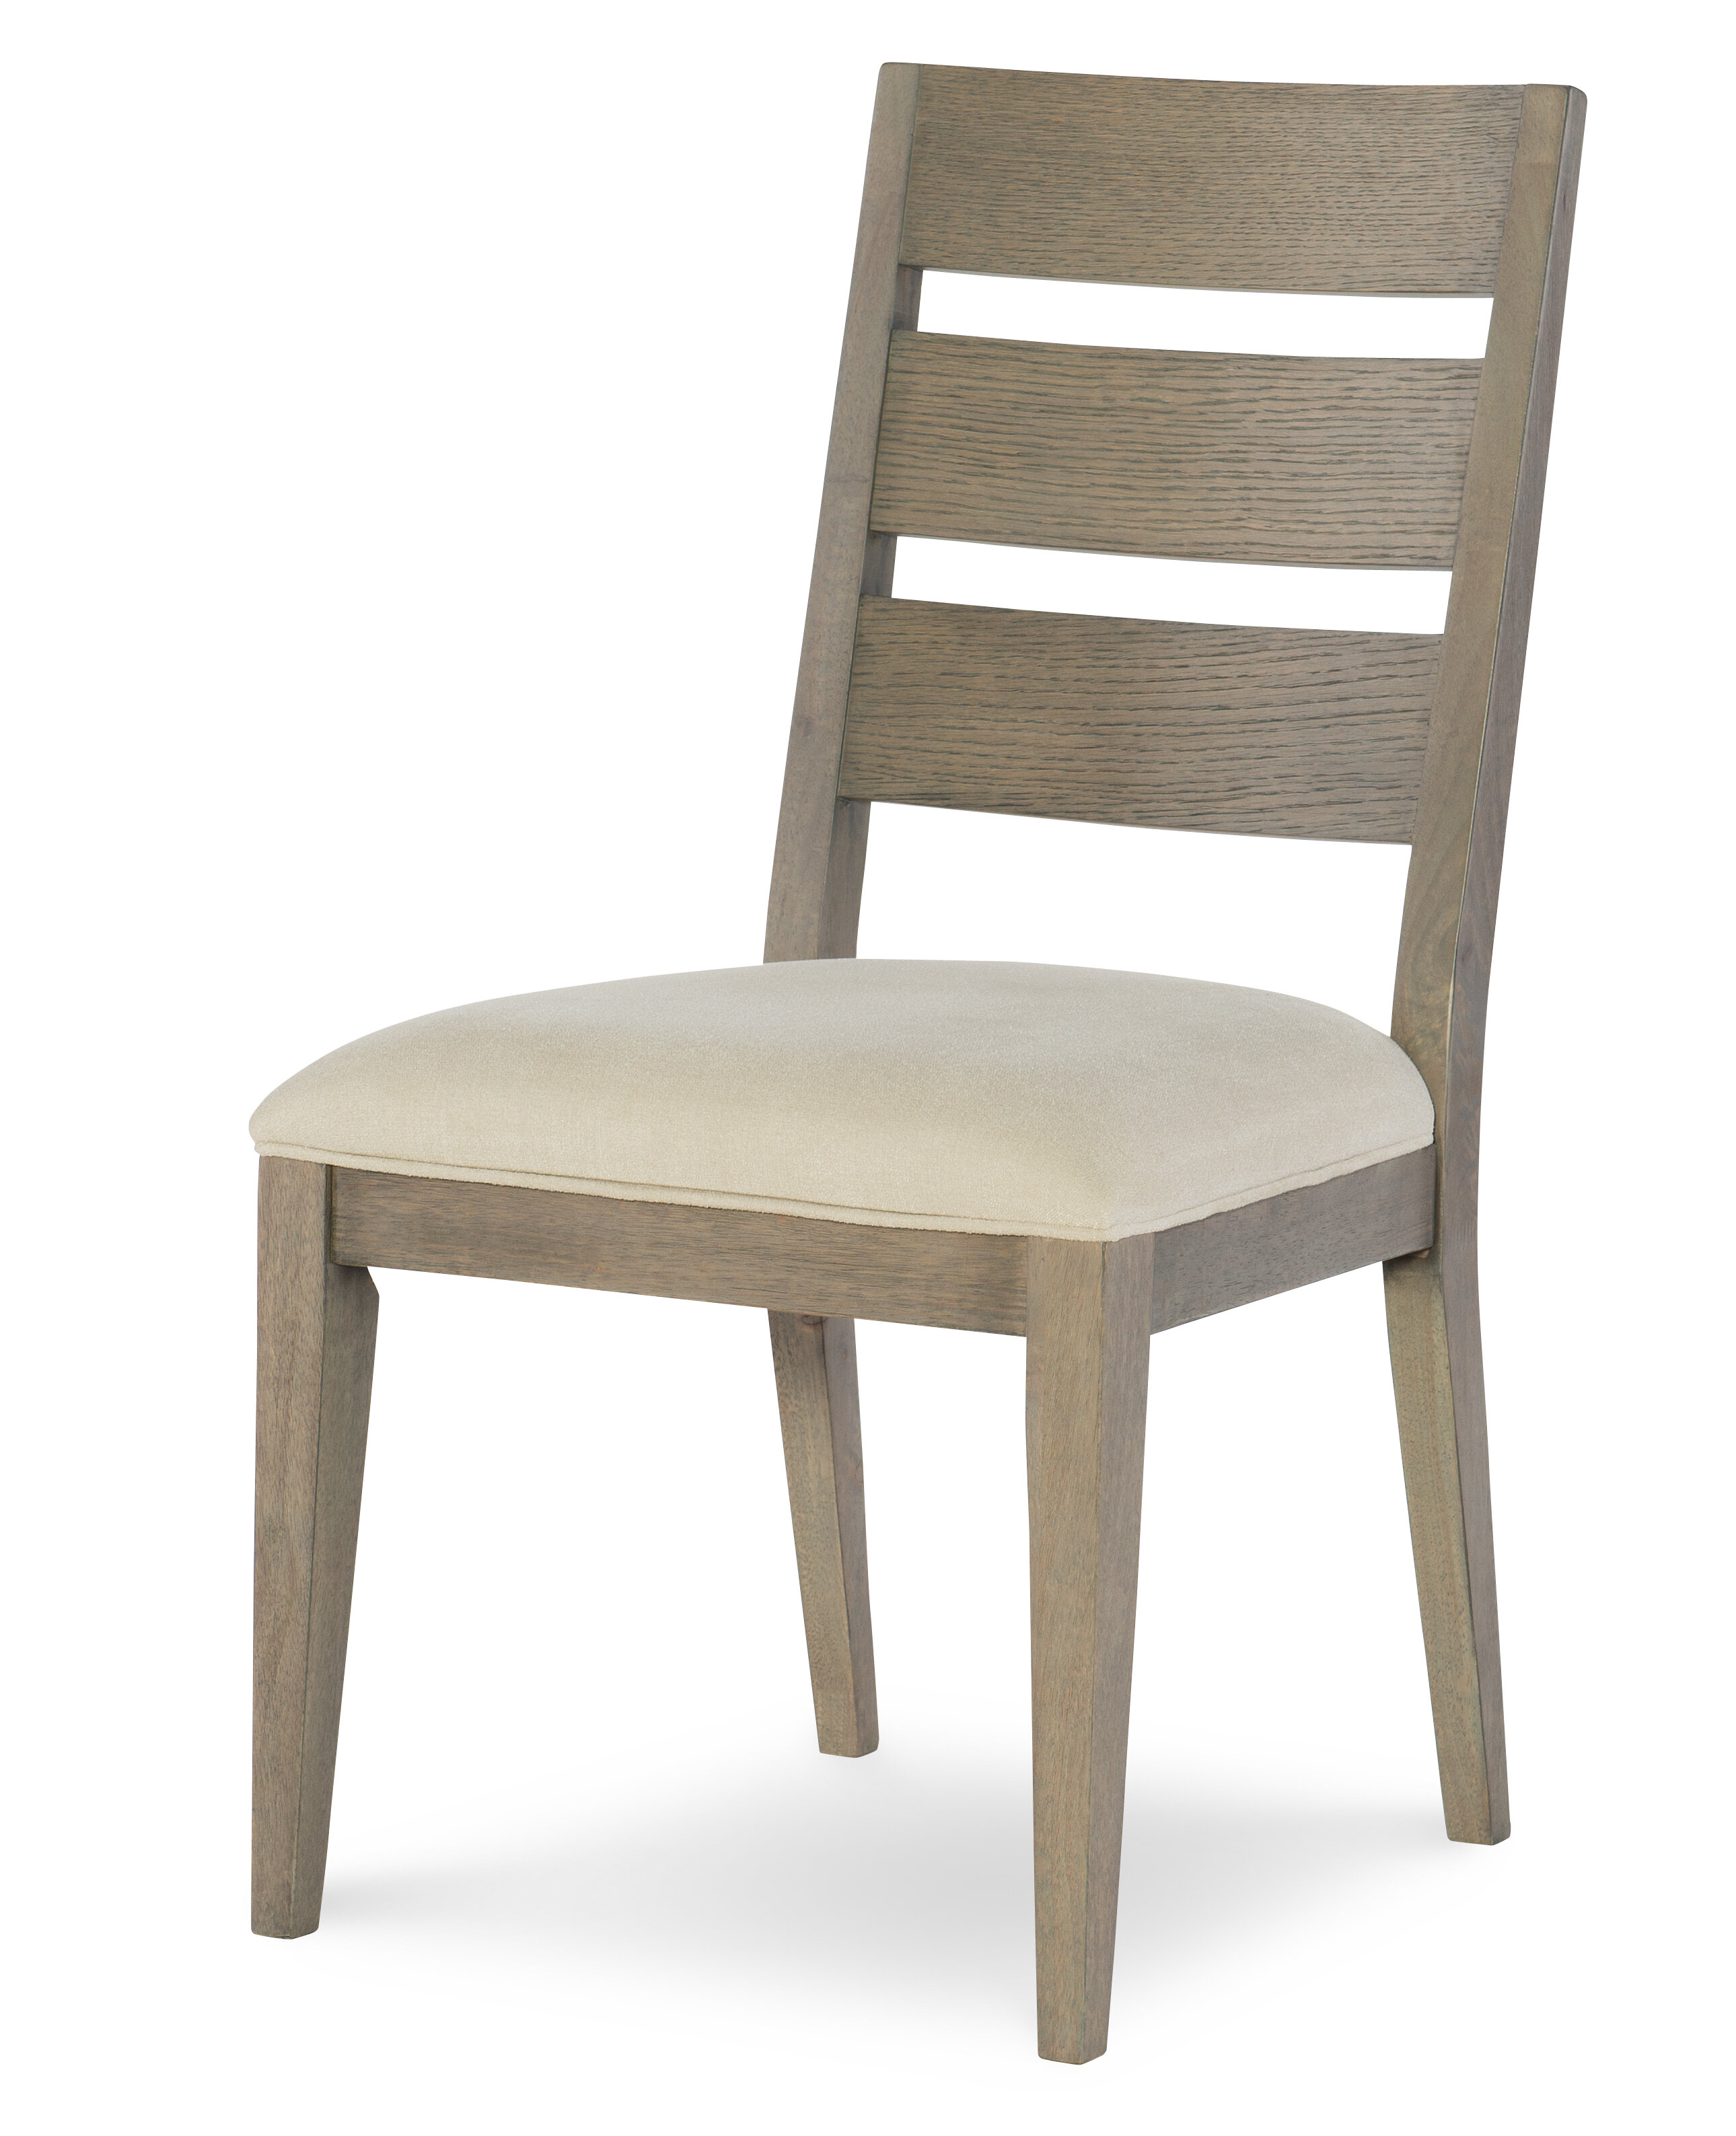 Rachael Ray Home Highline By Rachael Ray Home Upholstered Dining Chair In Greige Reviews Wayfair